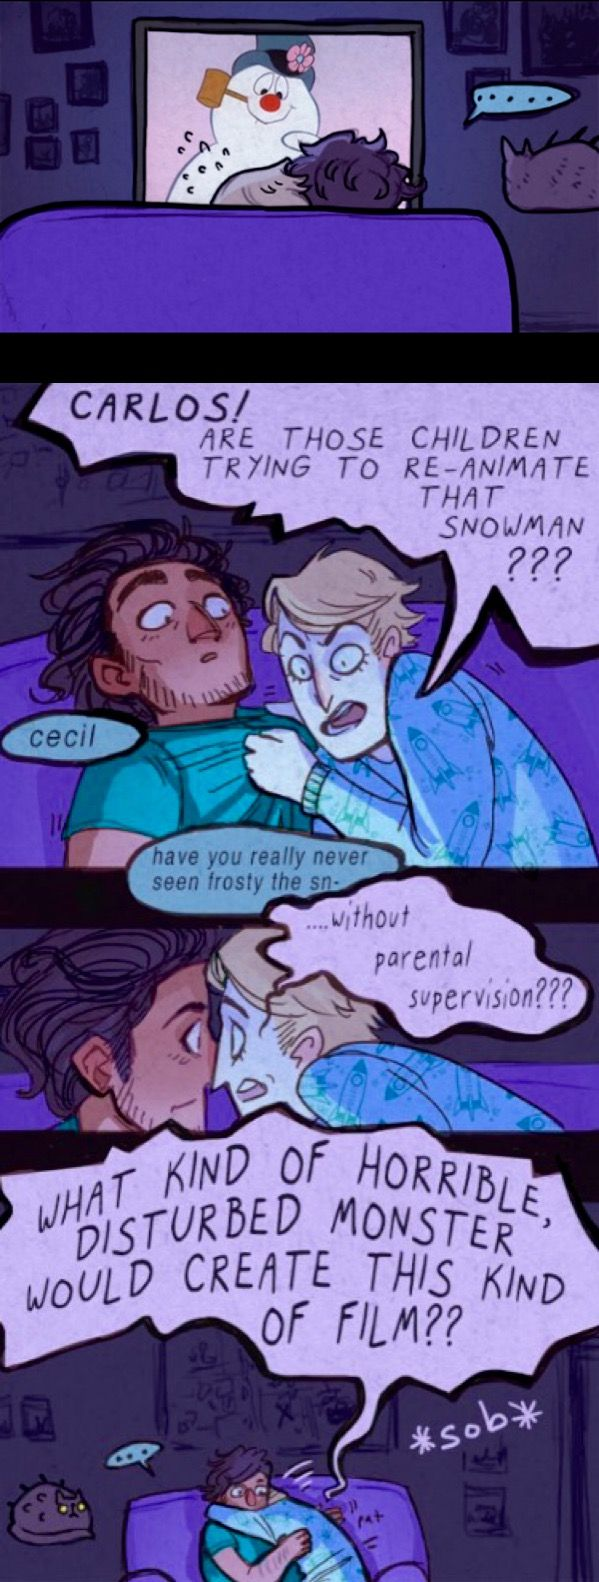 Welcome to Night Vale comic Carlos and Cecil watching Frosty the snowman by harlequinpants on Tumblr